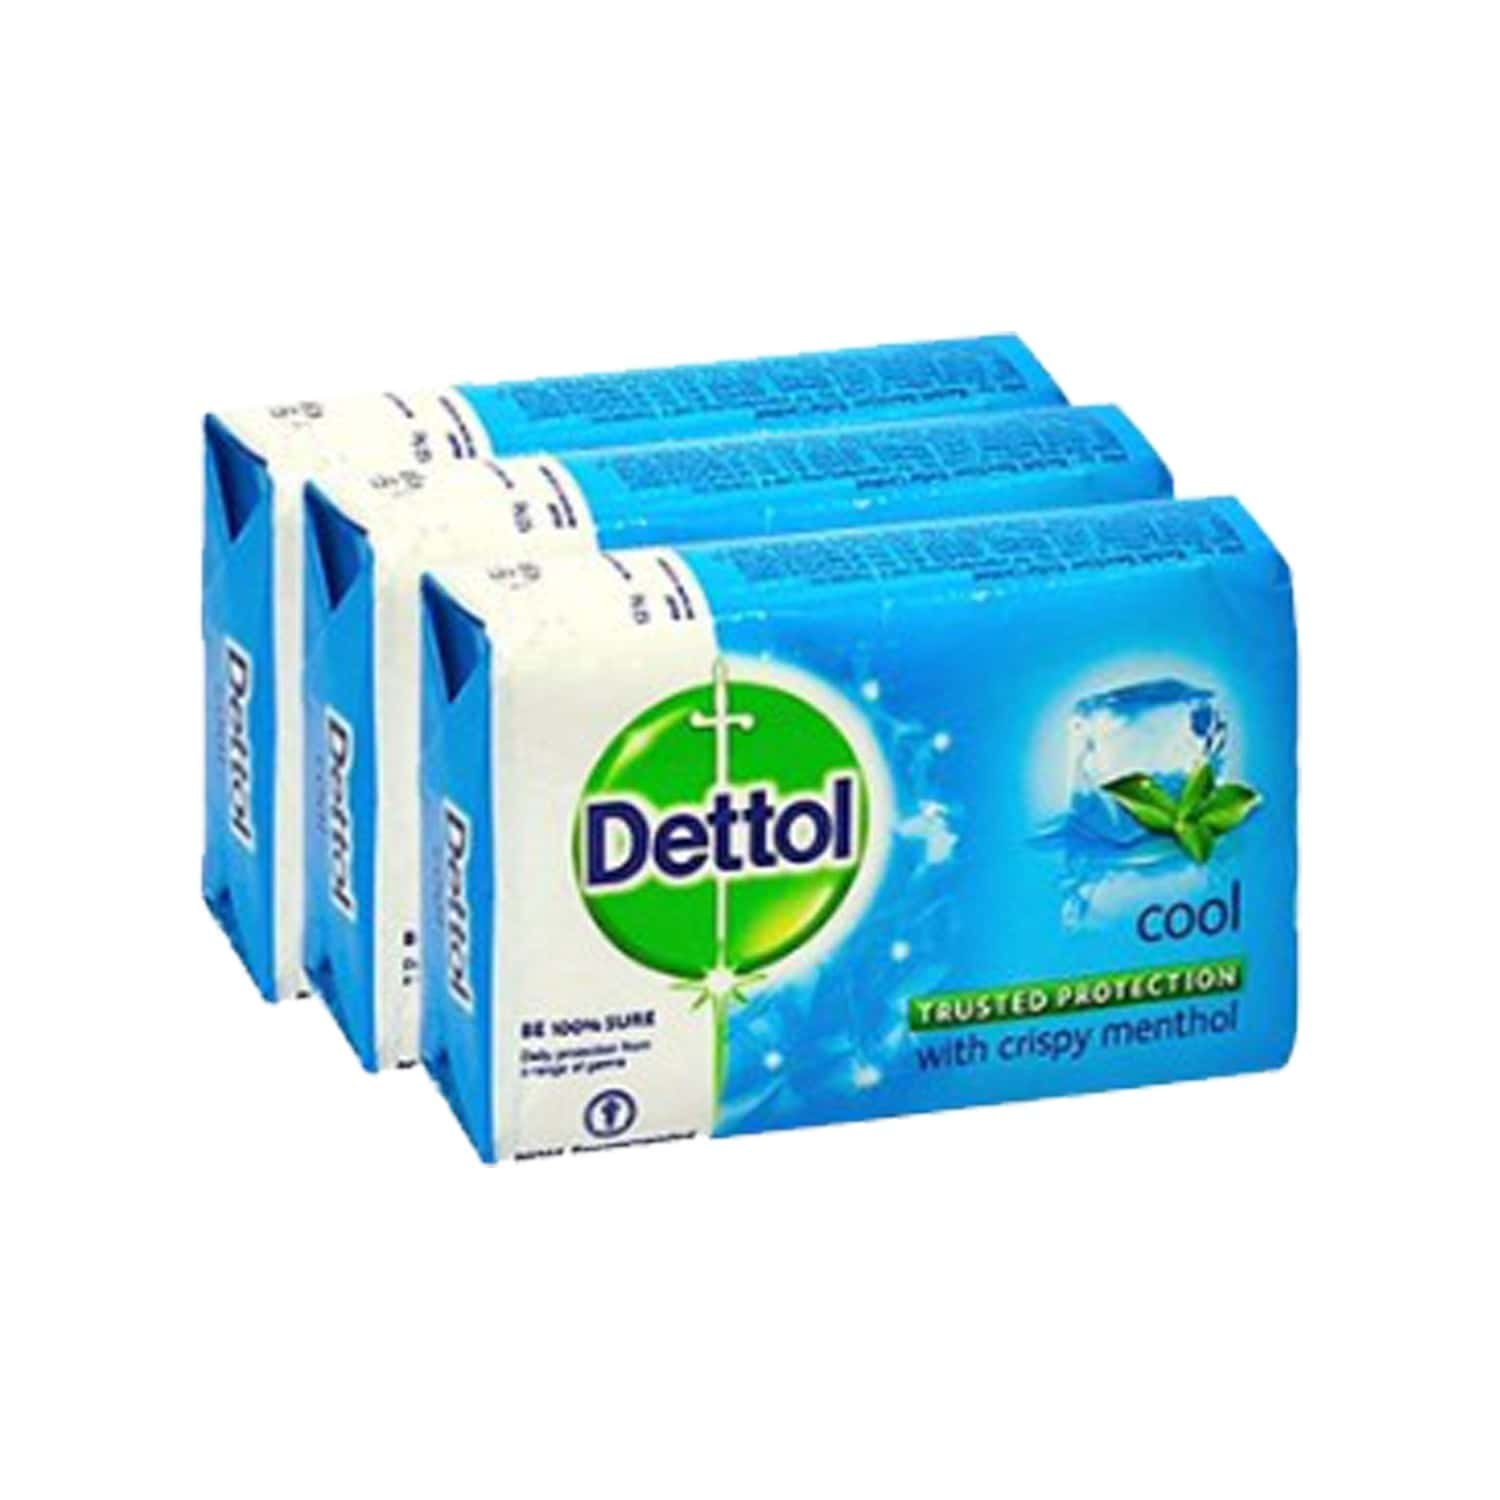 Dettol Germ Protection Soap Cool 3x120 Gm